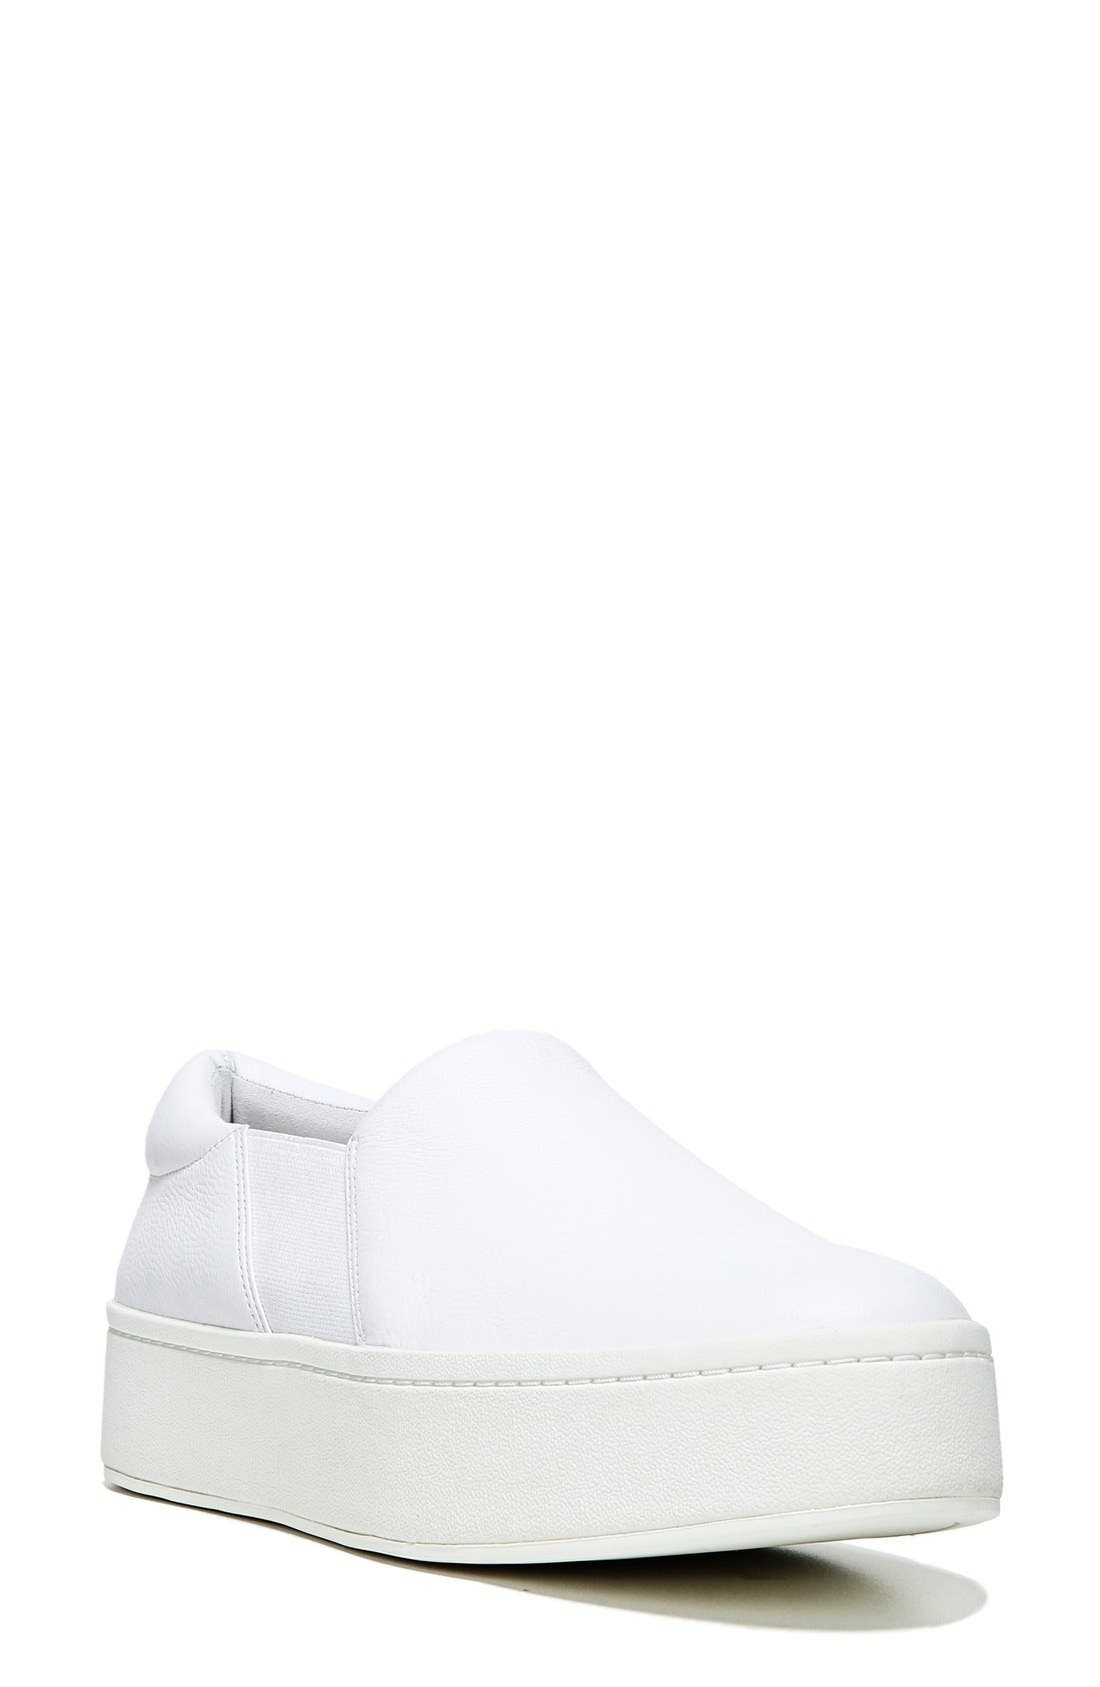 Warren Slip-On Sneaker,                         Main,                         color, 100